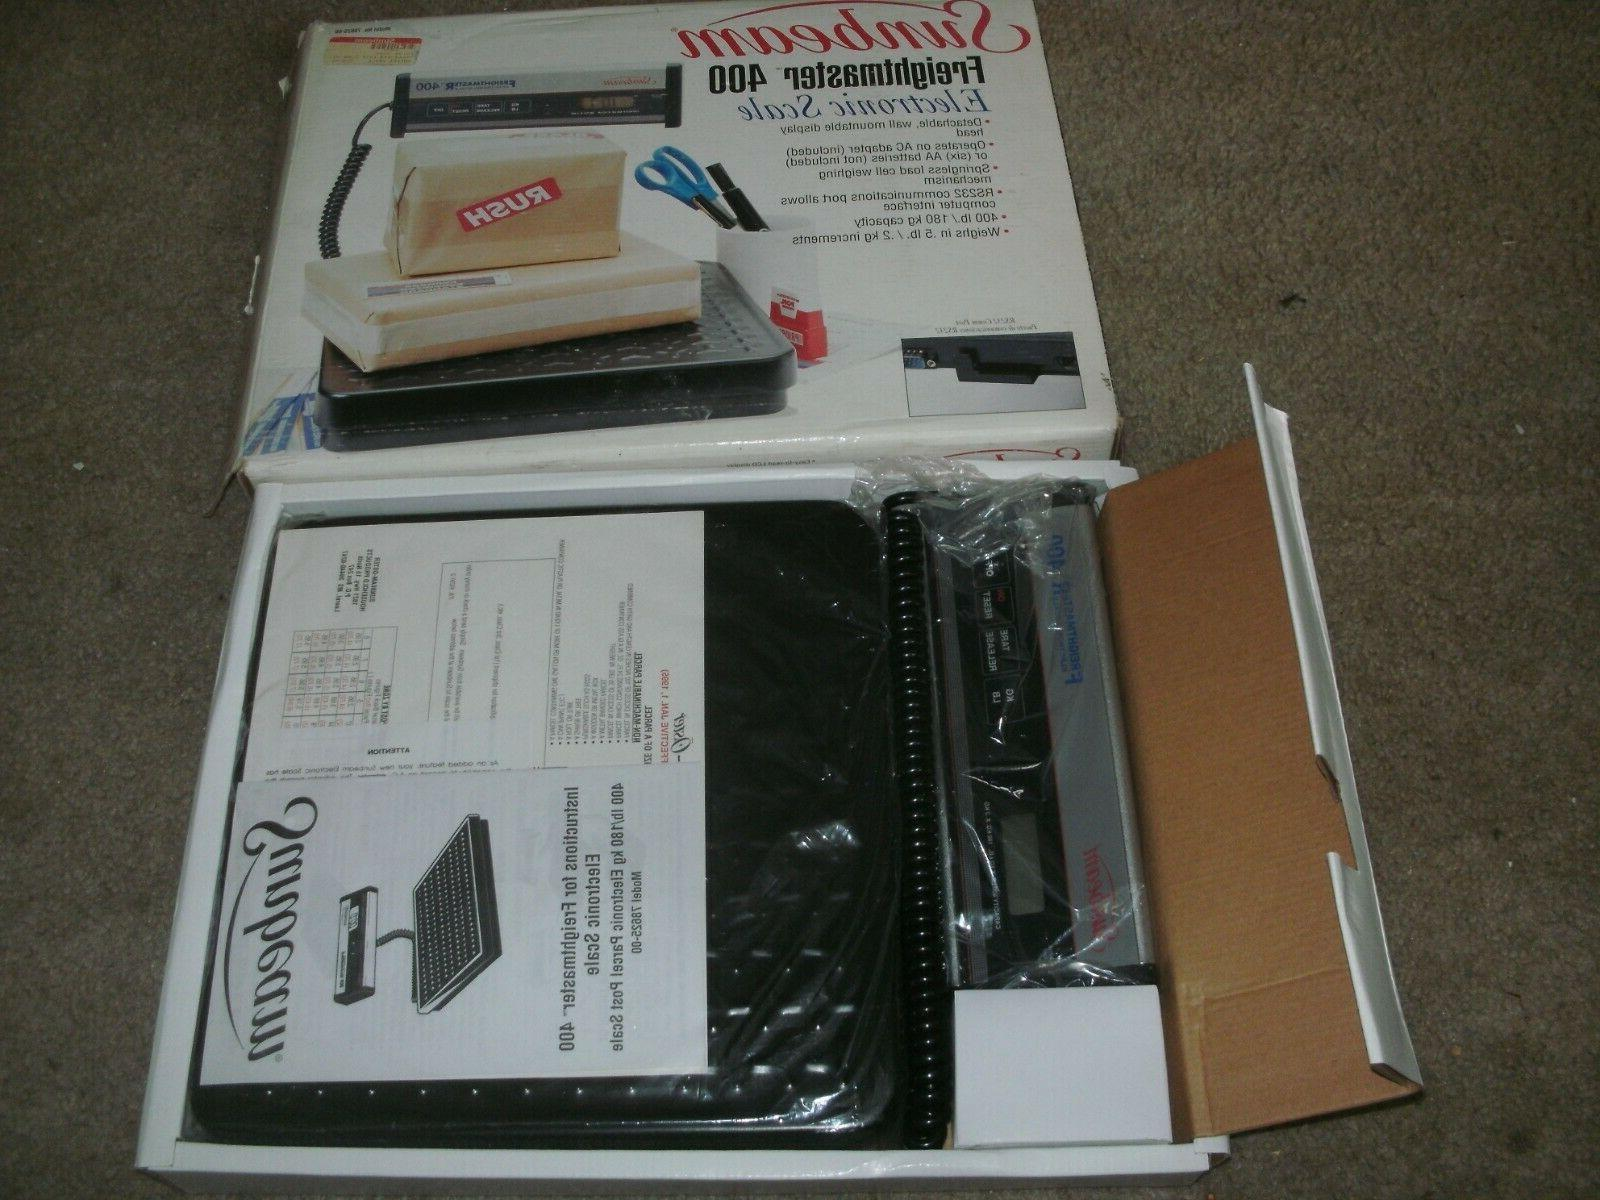 nib freightmaster 400 electronic scale 400 lb